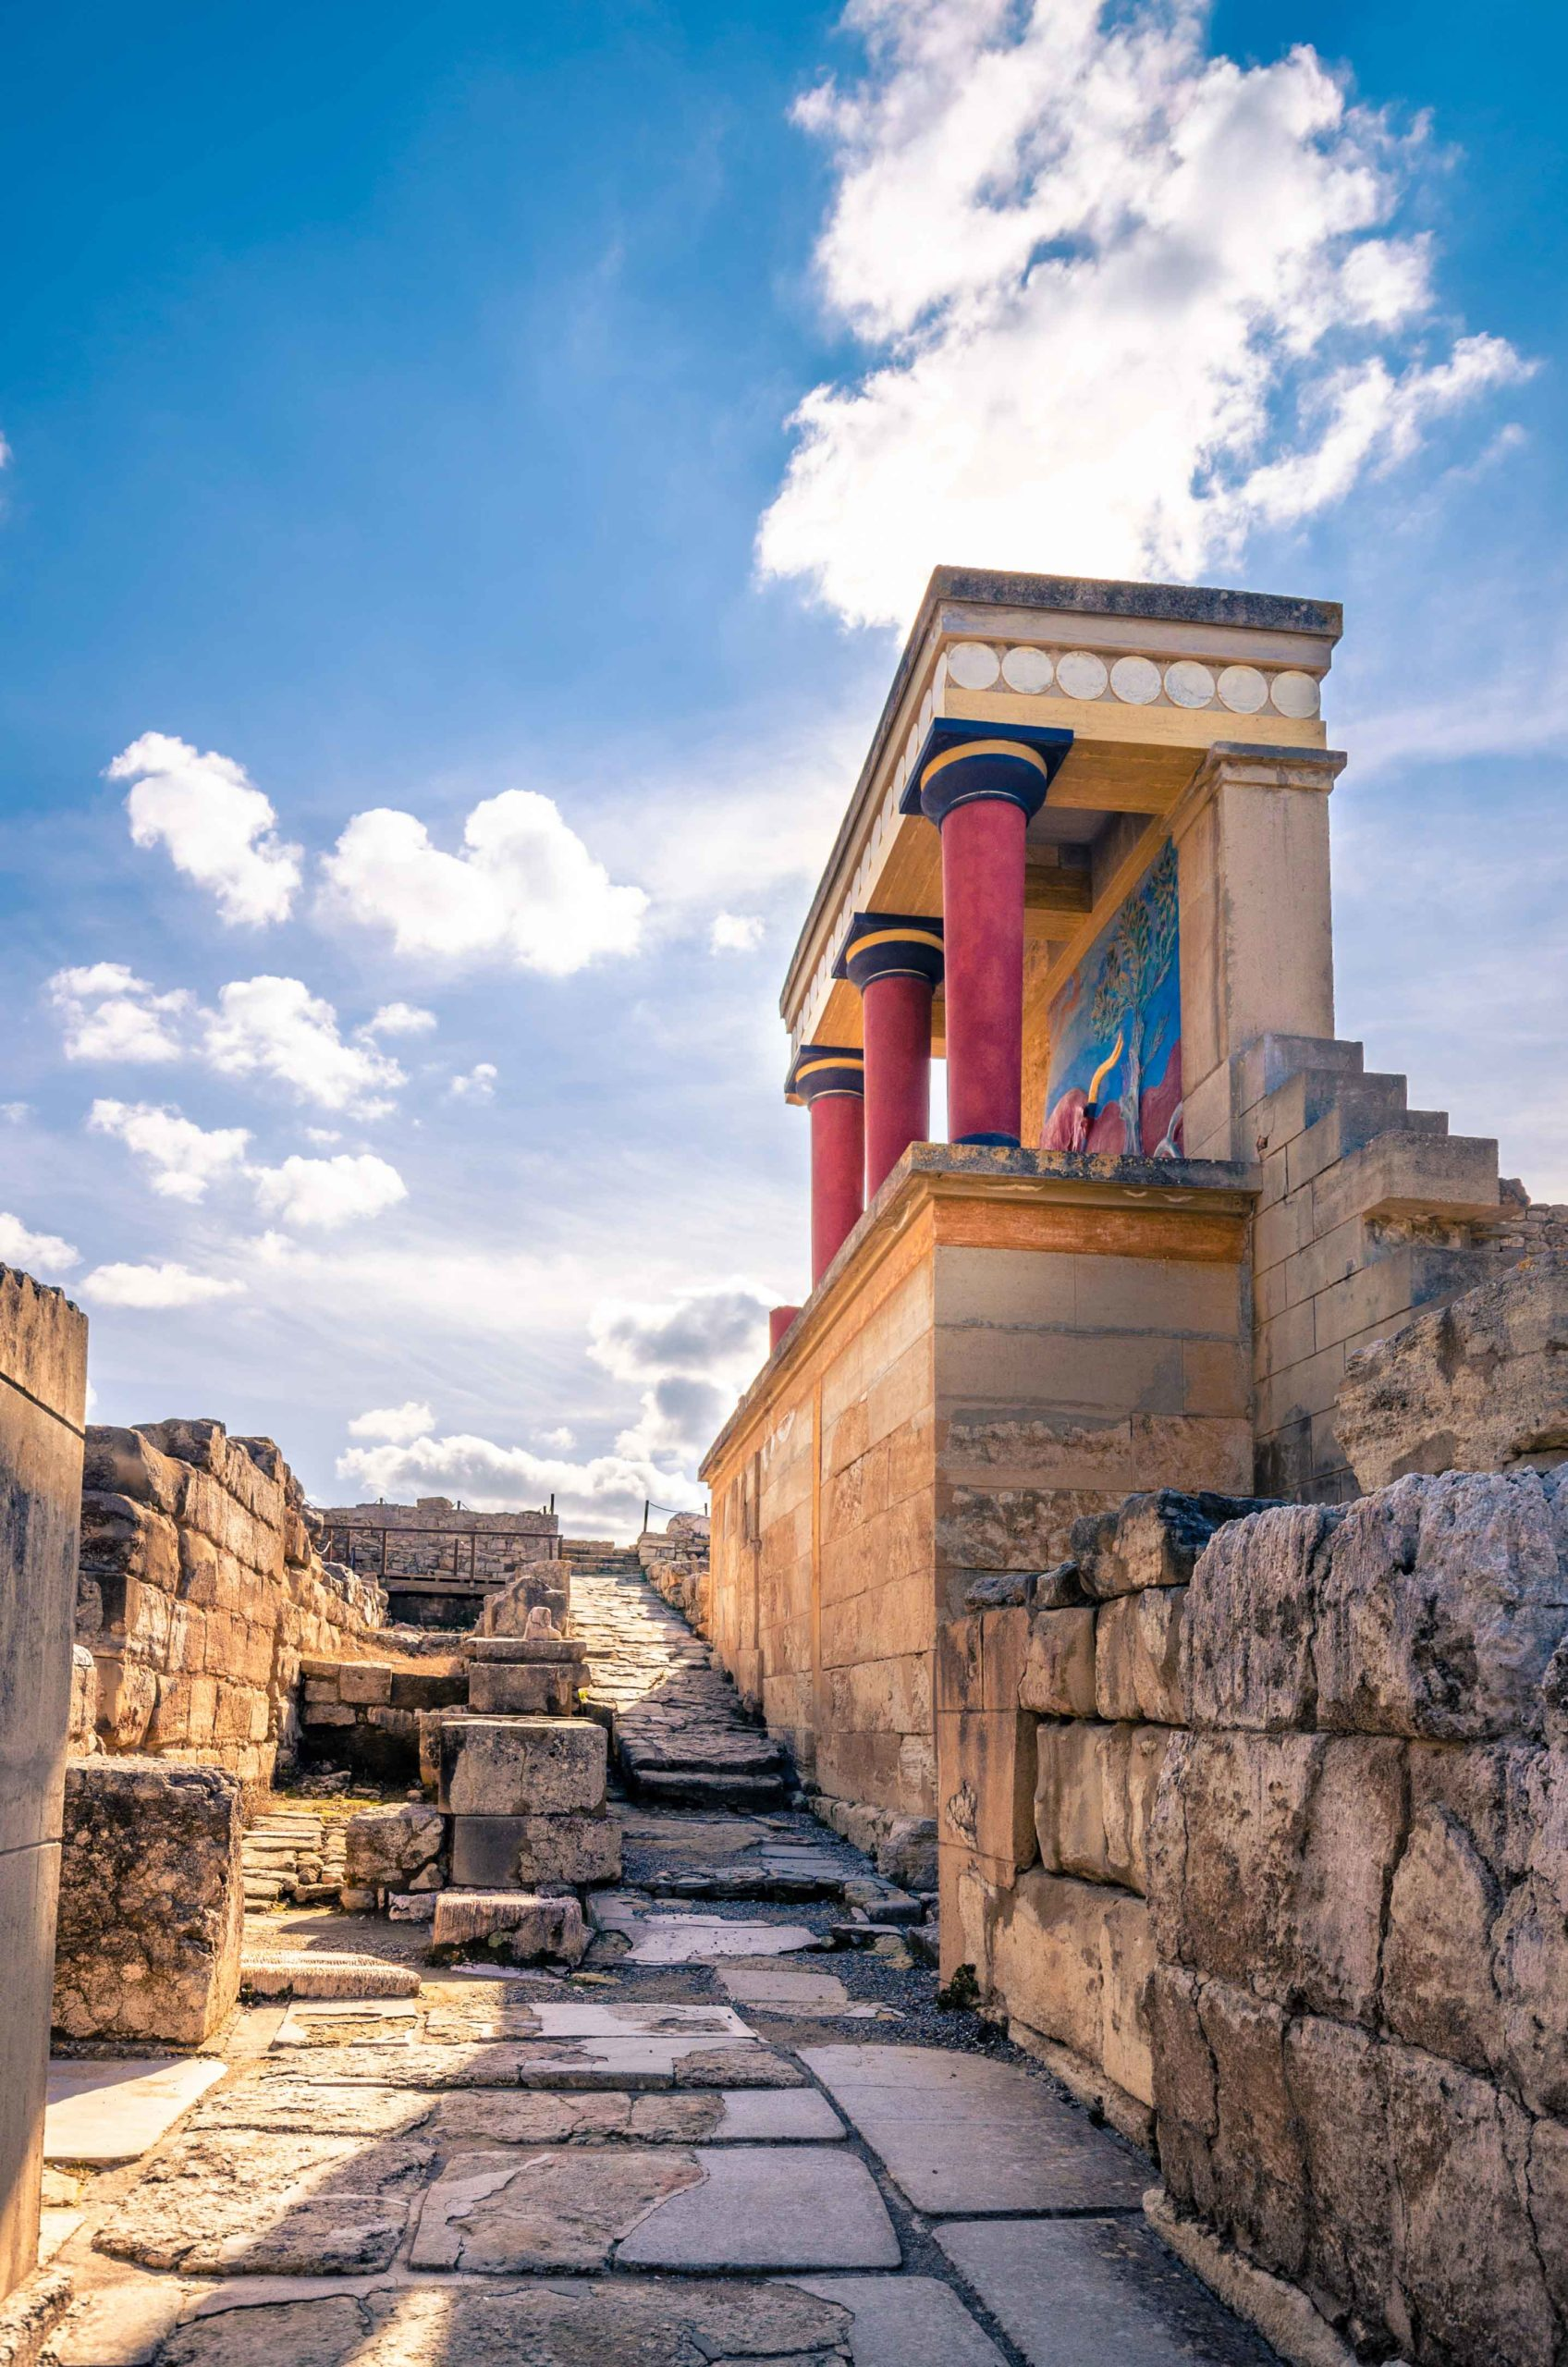 Canva---Knossos-palace-ruins-at-Crete,-Greece